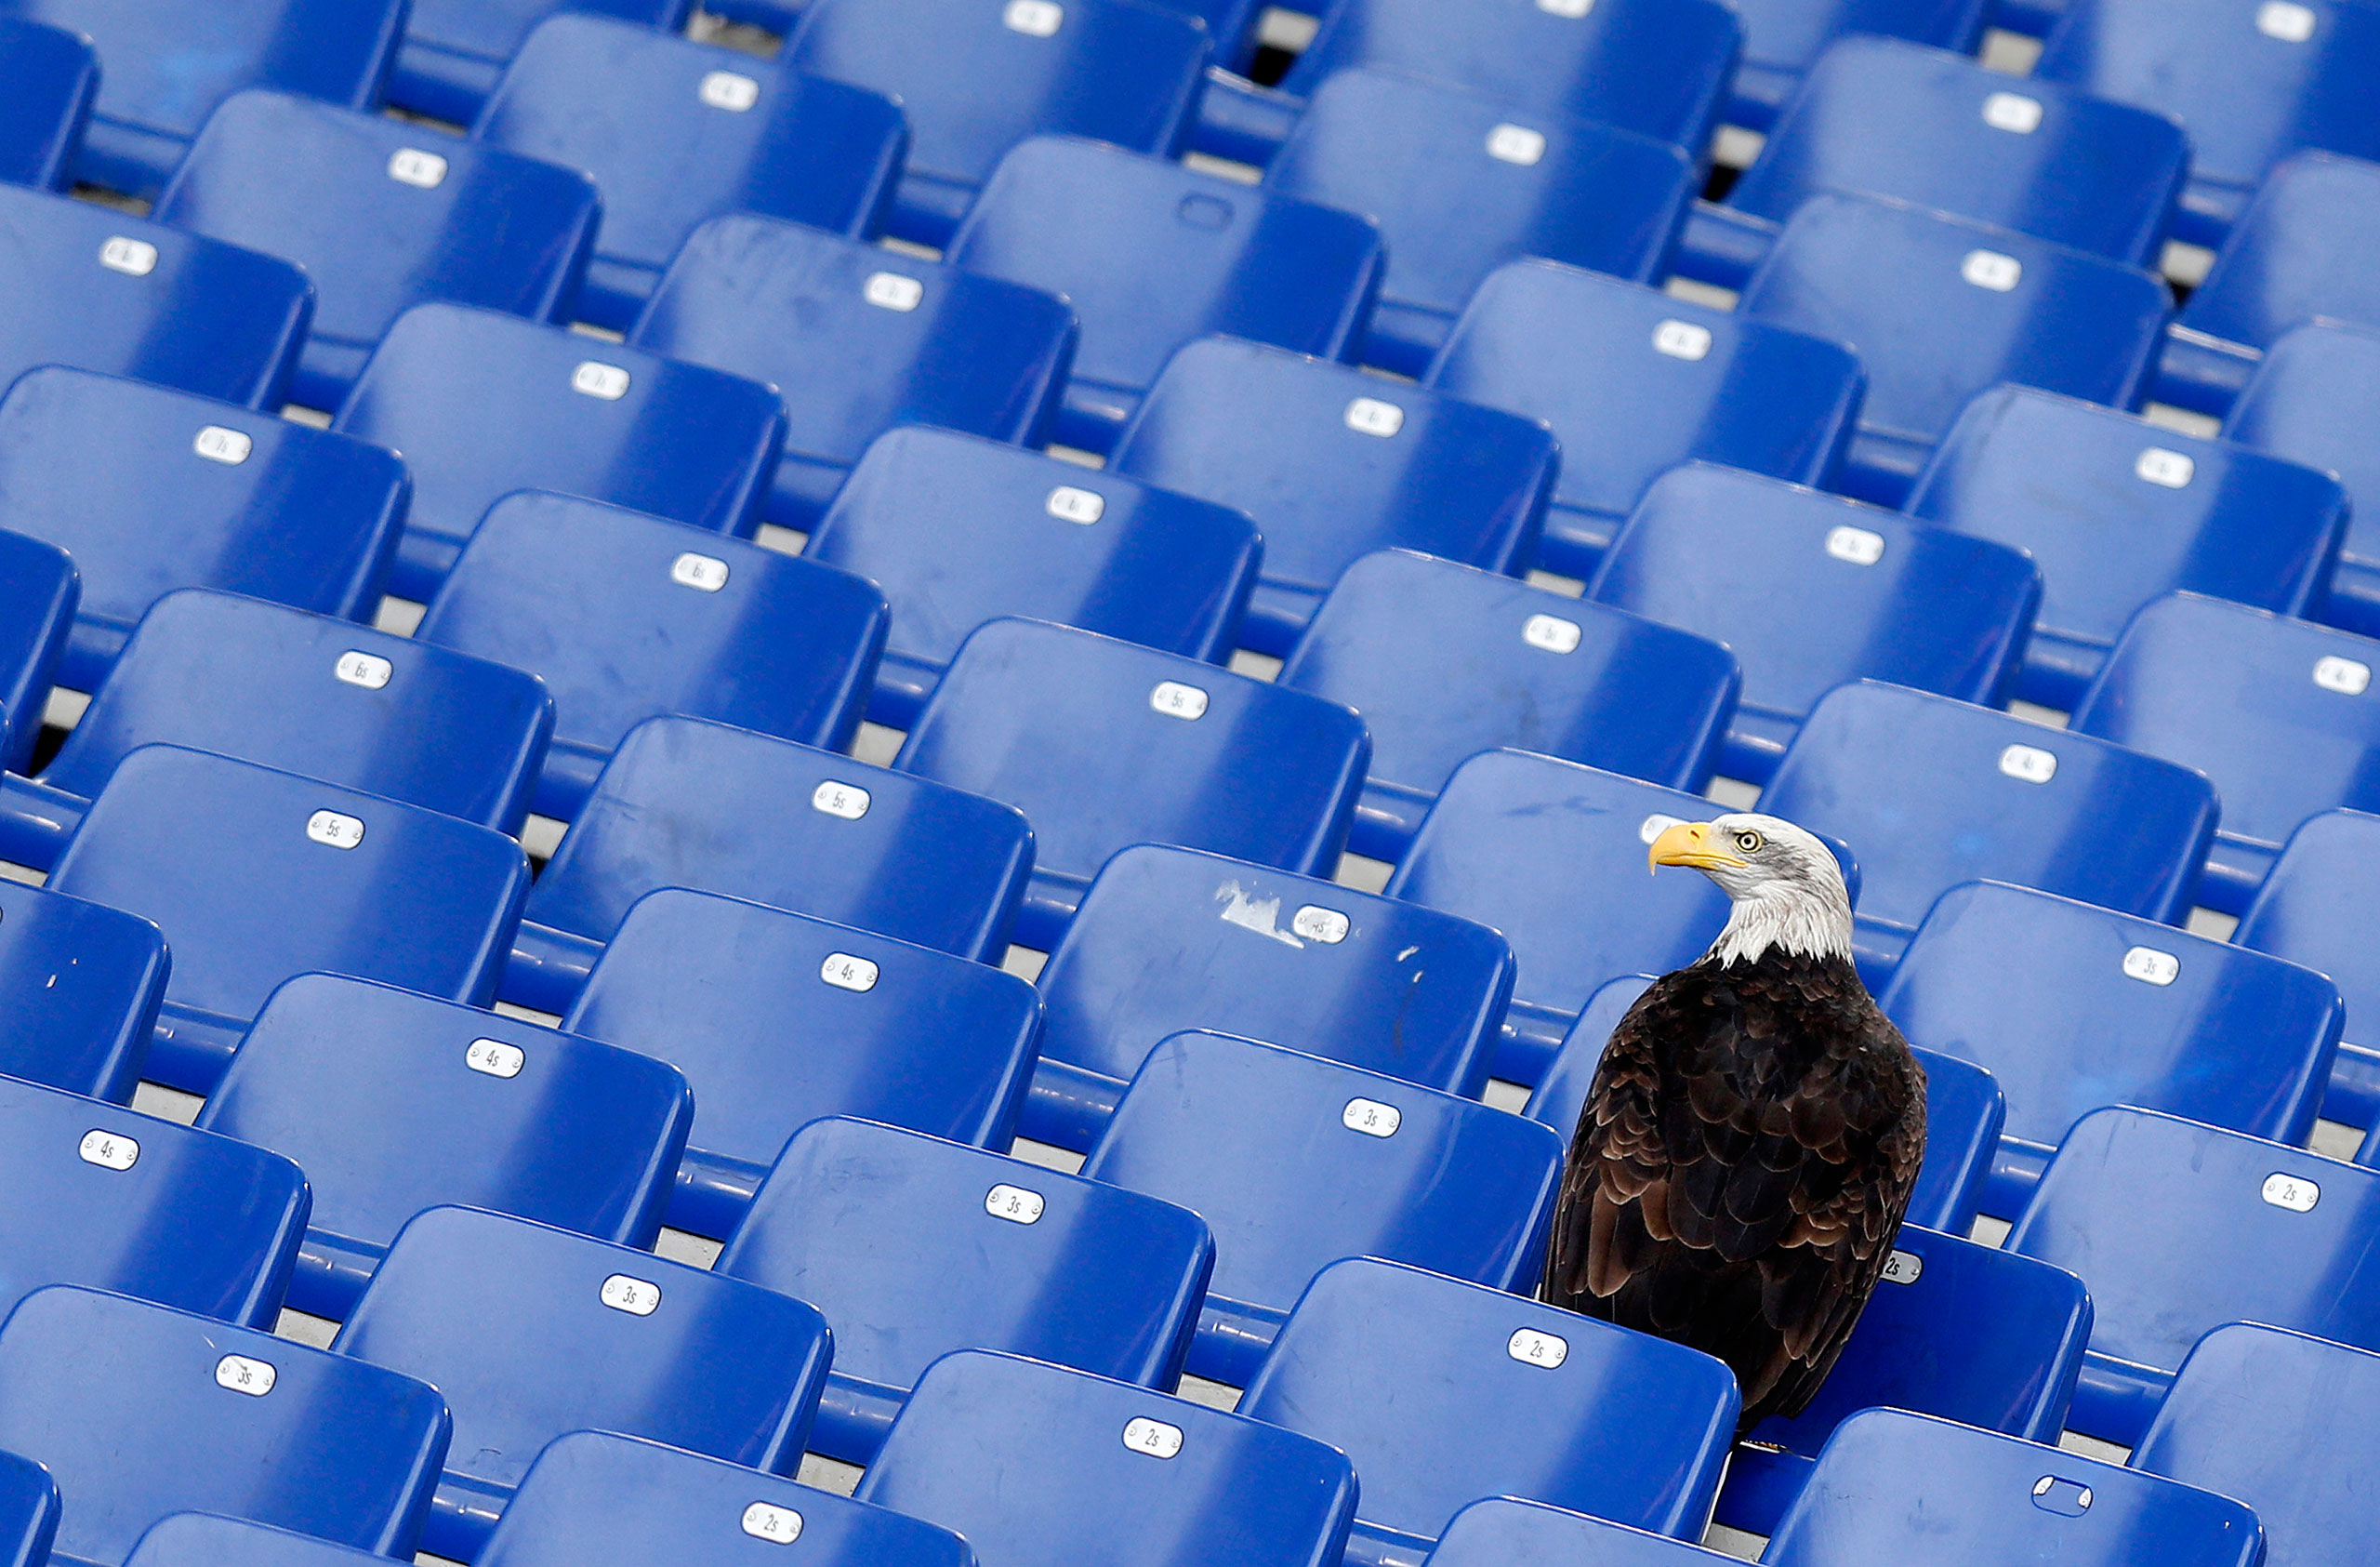 A white headed eagle called Olimpia, mascot of Italian football team Lazio, lands in the stands before the start of the Italian Serie A soccer match against Napoli at the Olympic stadium in Rome, Italy, Jan. 18, 2015.